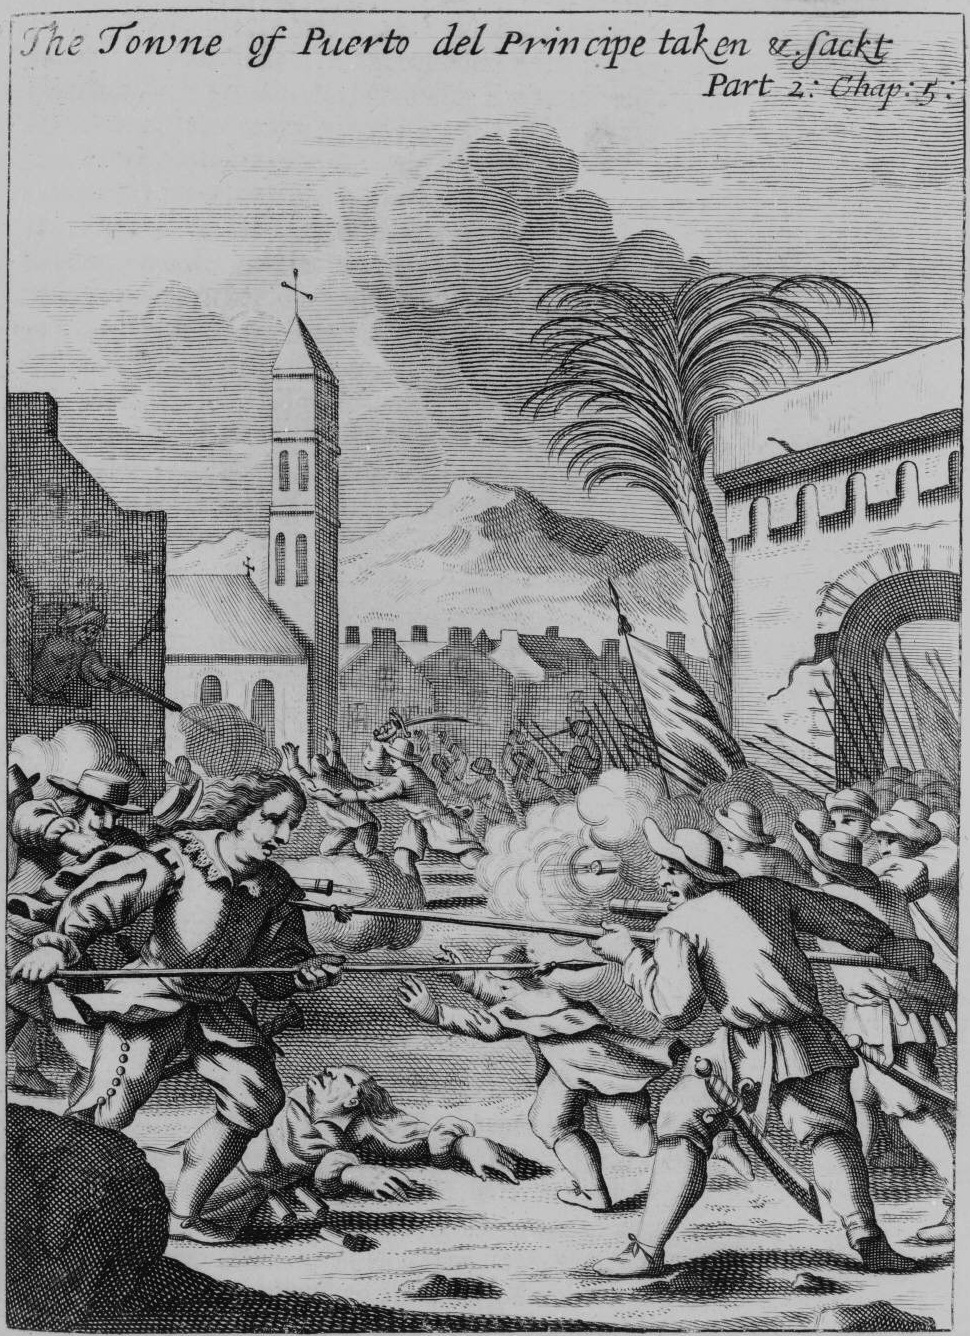 Archivo:Puerto del Príncipe - being sacked in 1668 - Project Gutenberg  eText 19396.